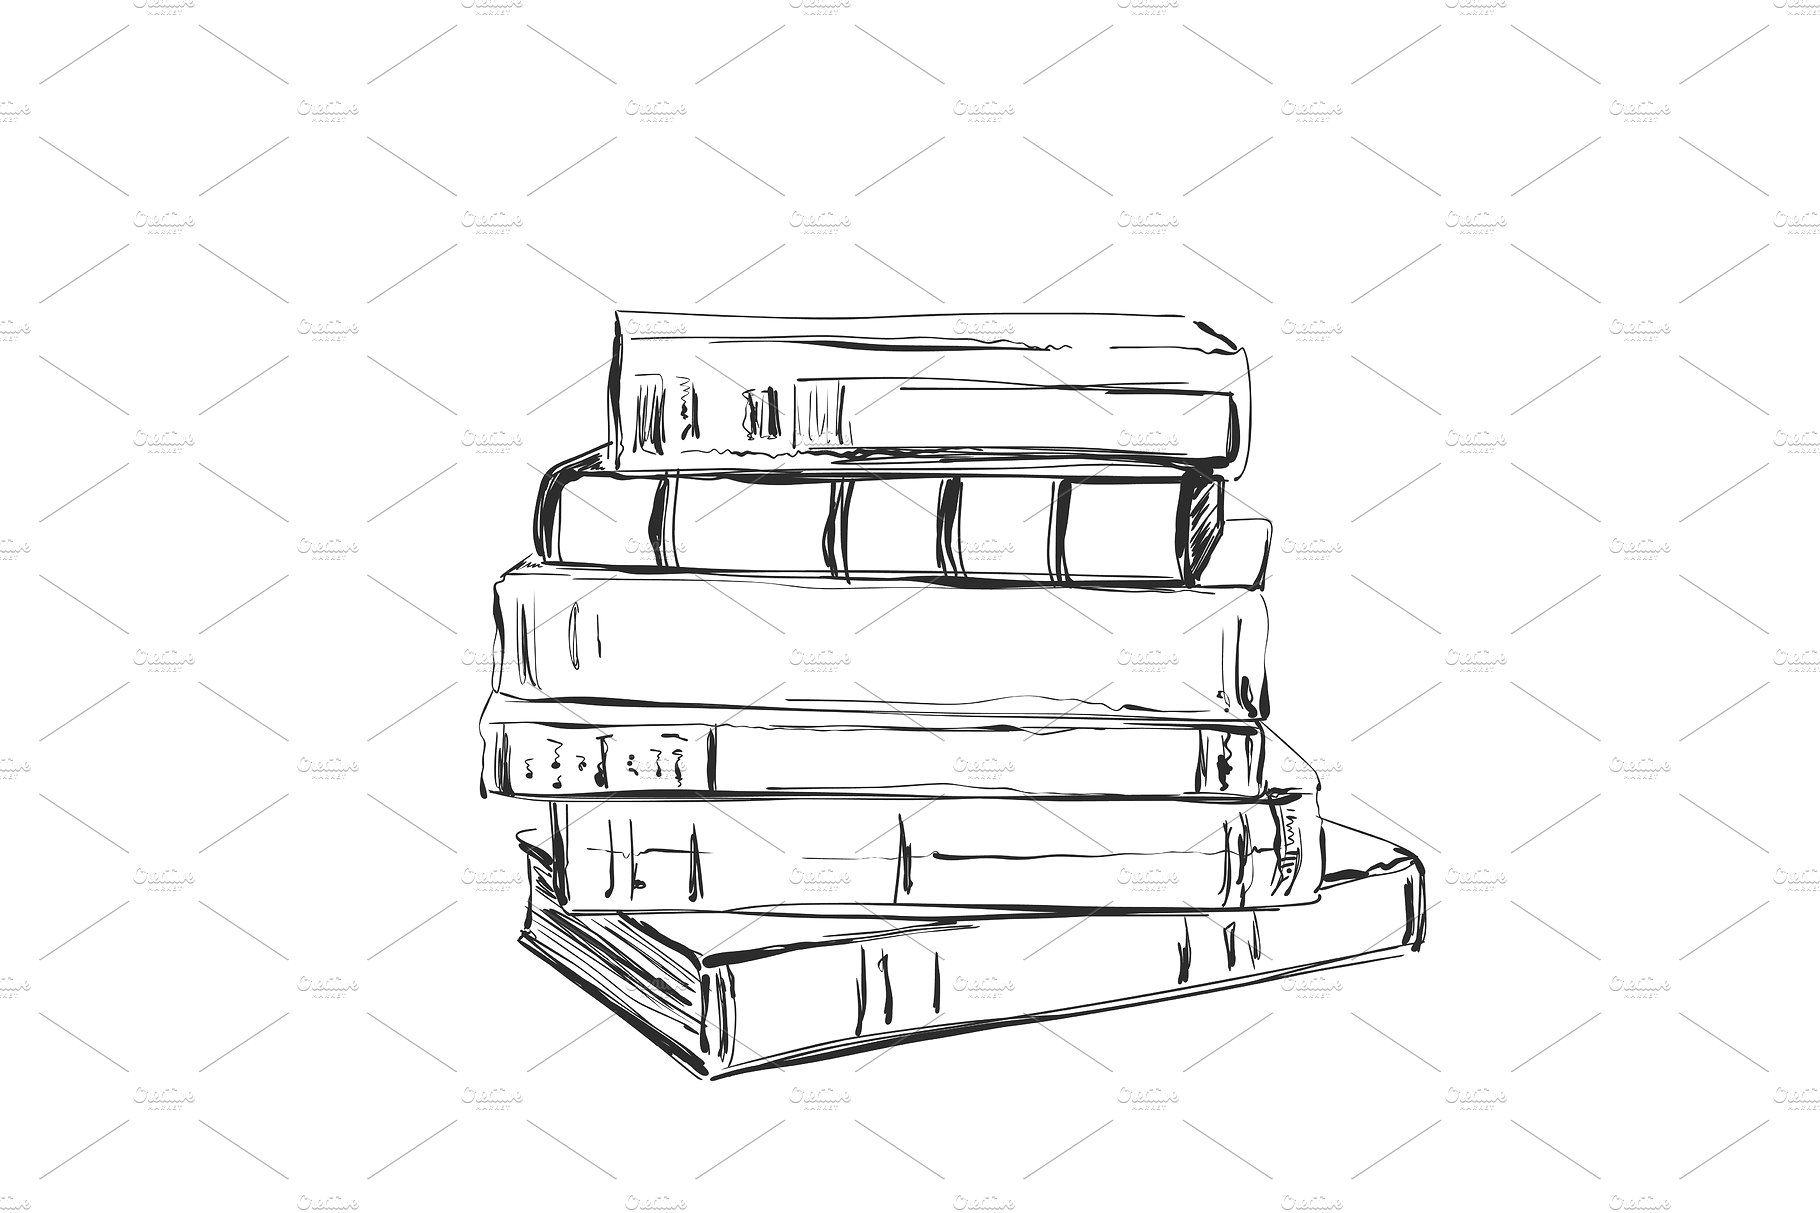 Hand Drawing A Pile Of Books Sketching Pile Of Books How To Draw Hands Book Drawing